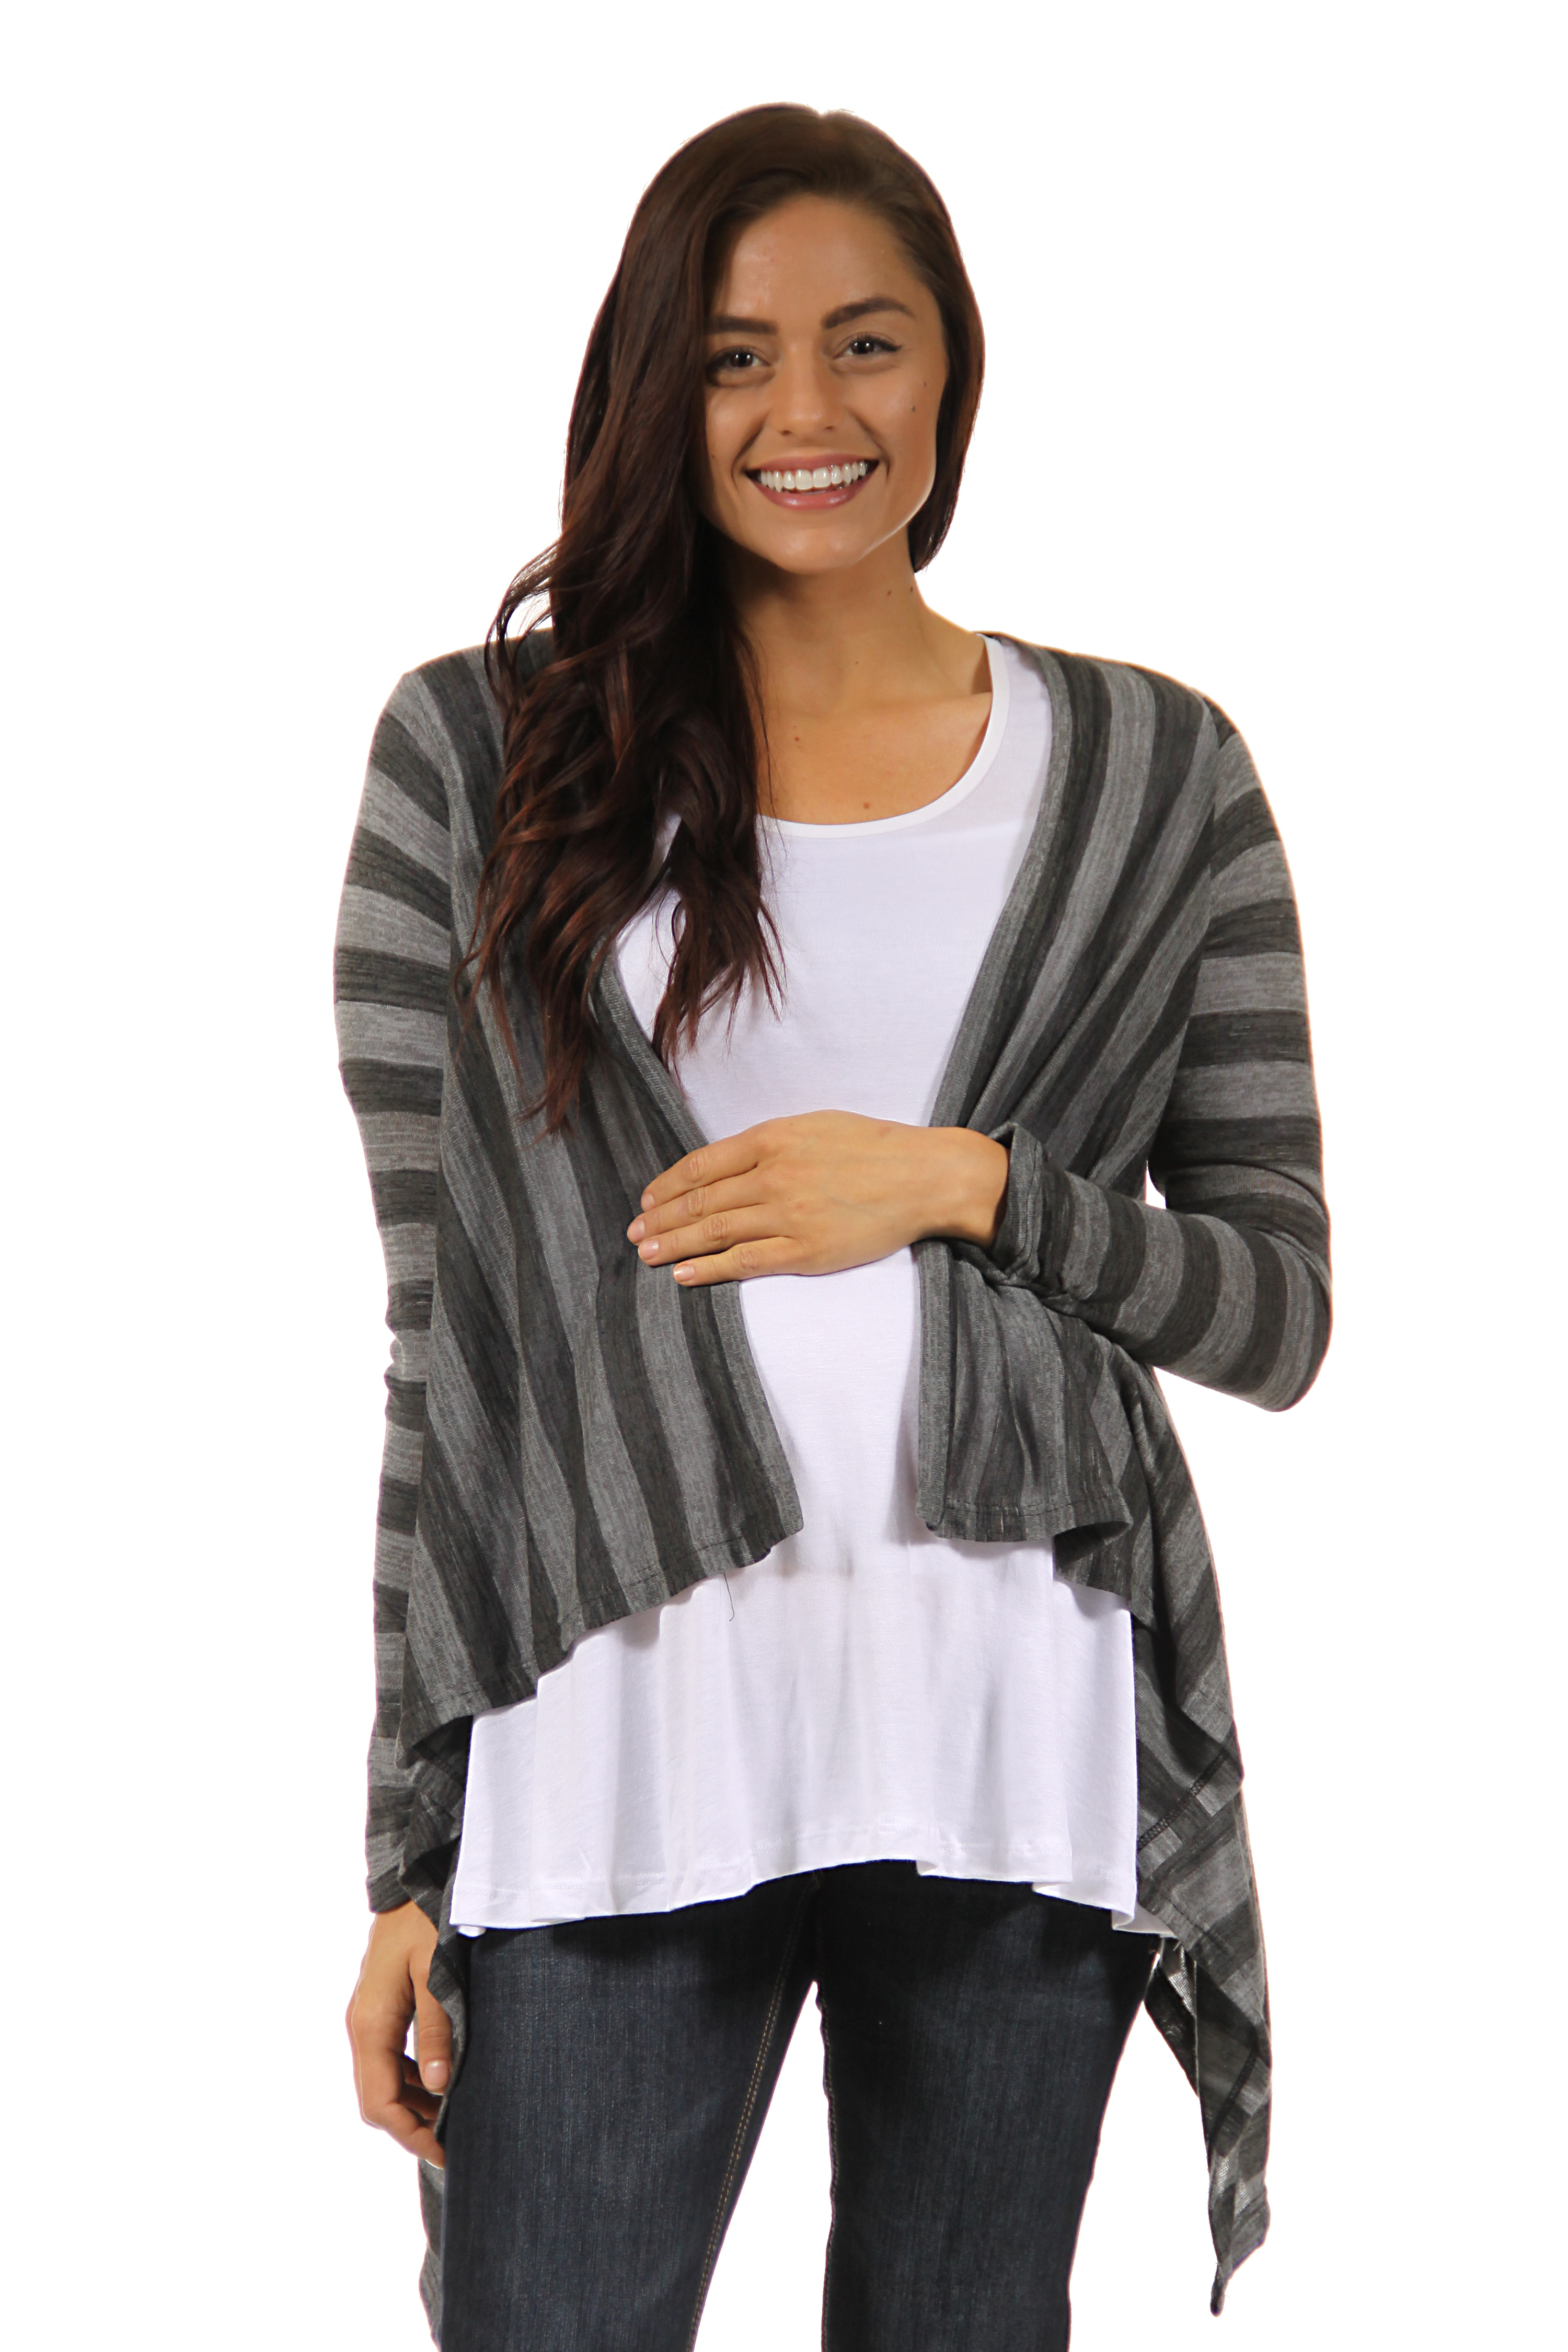 24/7 Comfort Apparel Women's Maternity Casual Charcoal Printed Shrug PartNumber: 3ZZVA83023312P MfgPartNumber: M316HST-S